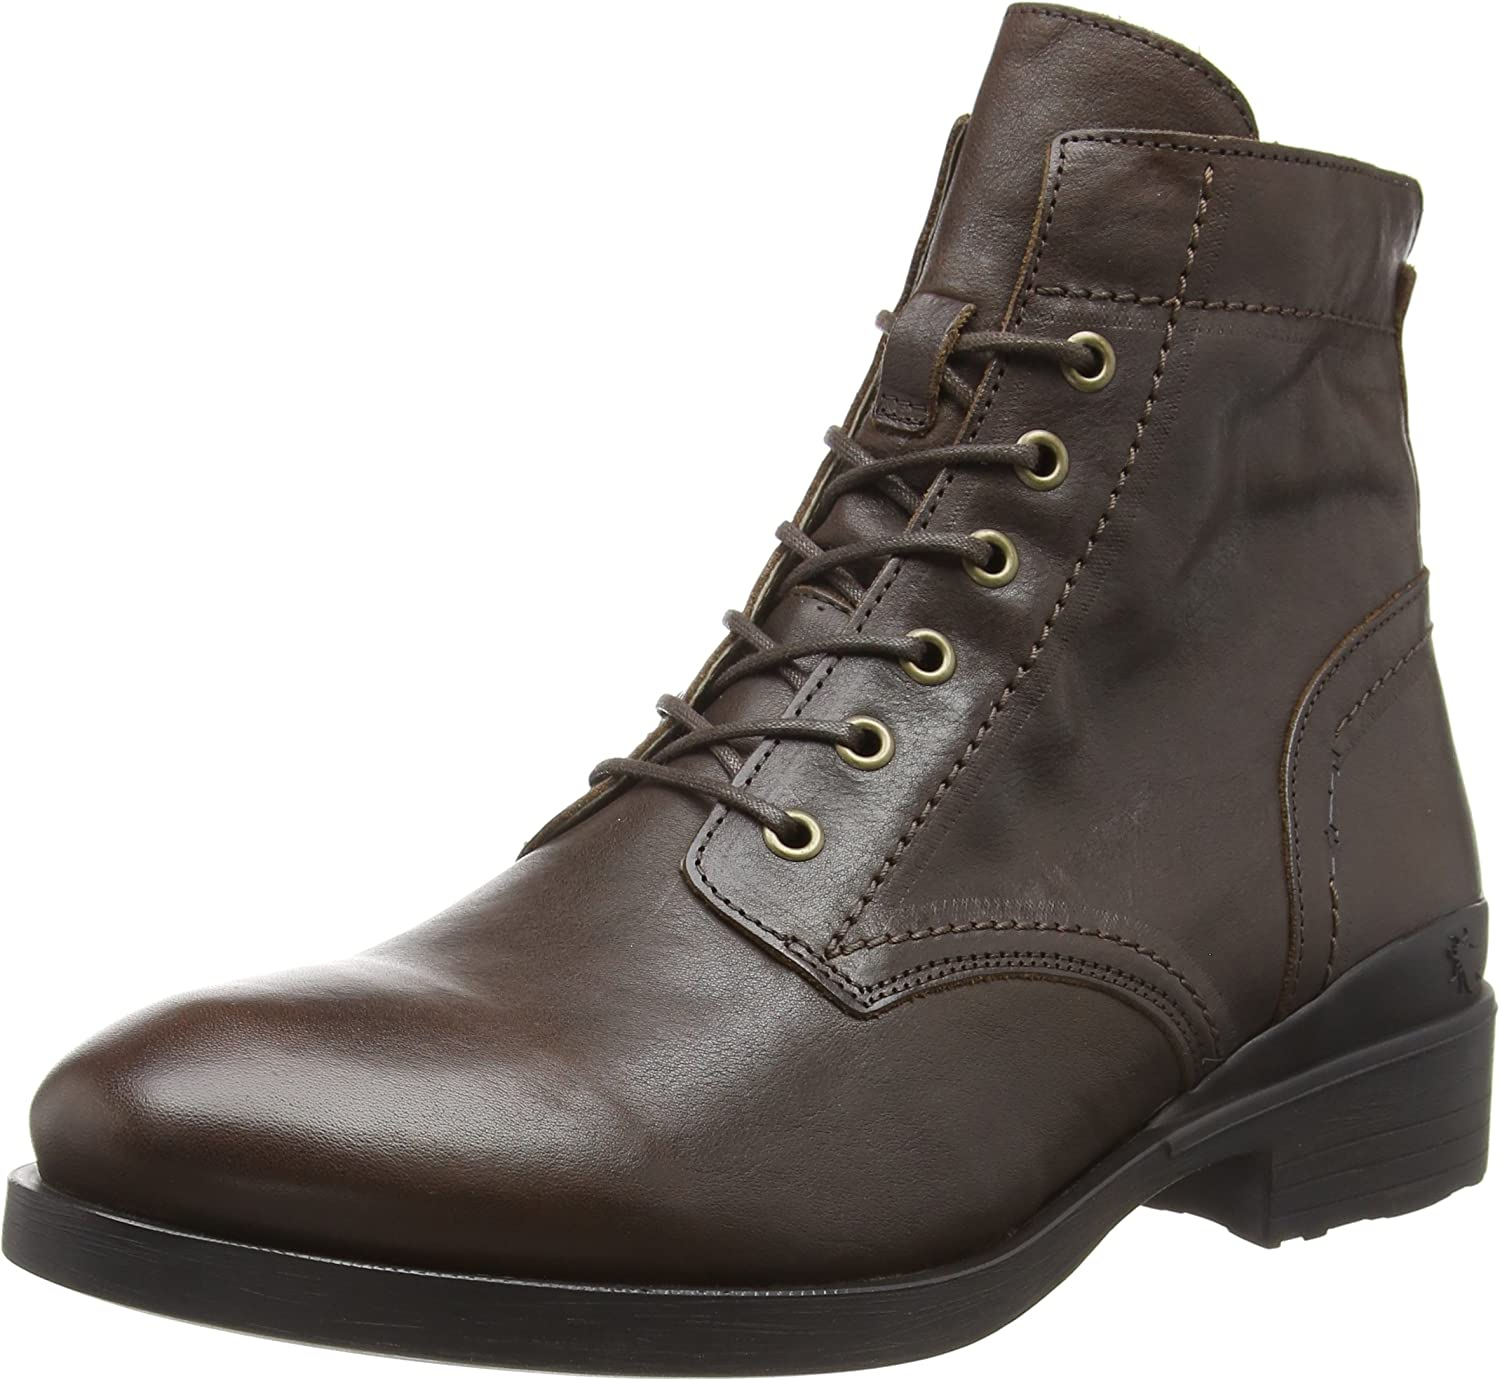 Fly London Marc343fly, Botas Clasicas para Hombre